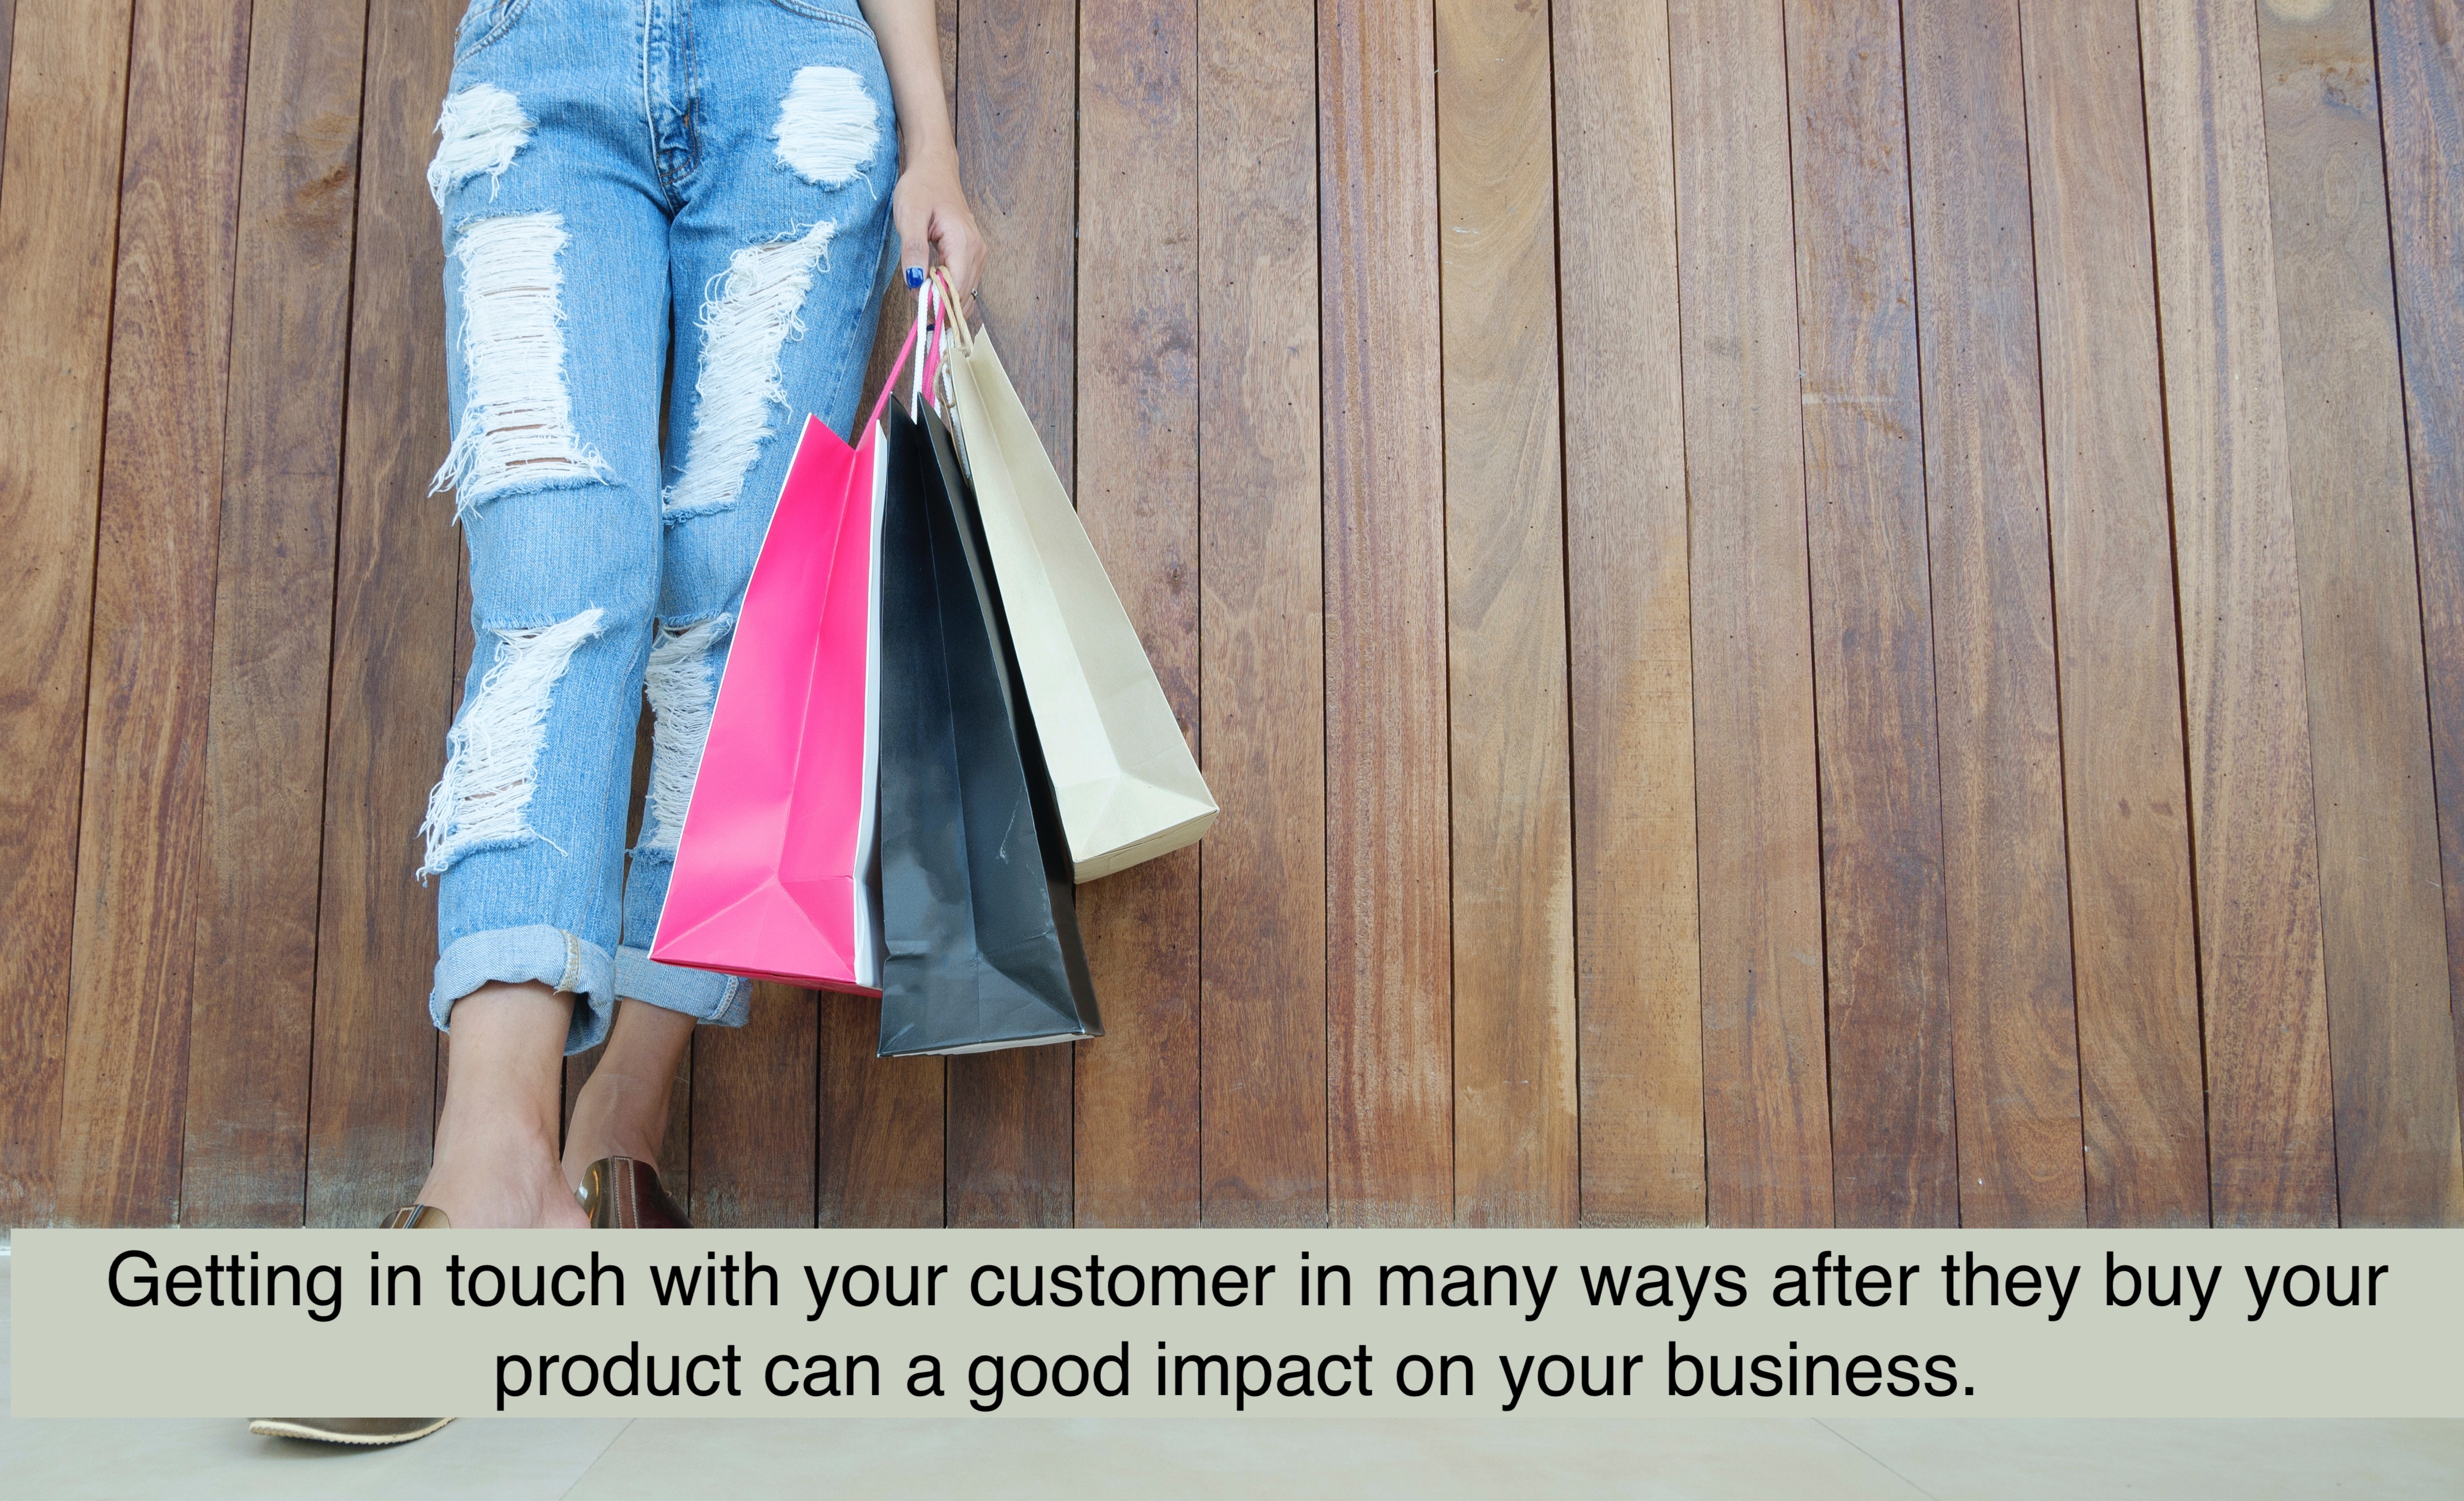 Getting in touch with your customer in many ways after they buy your product can a good impact on your business.